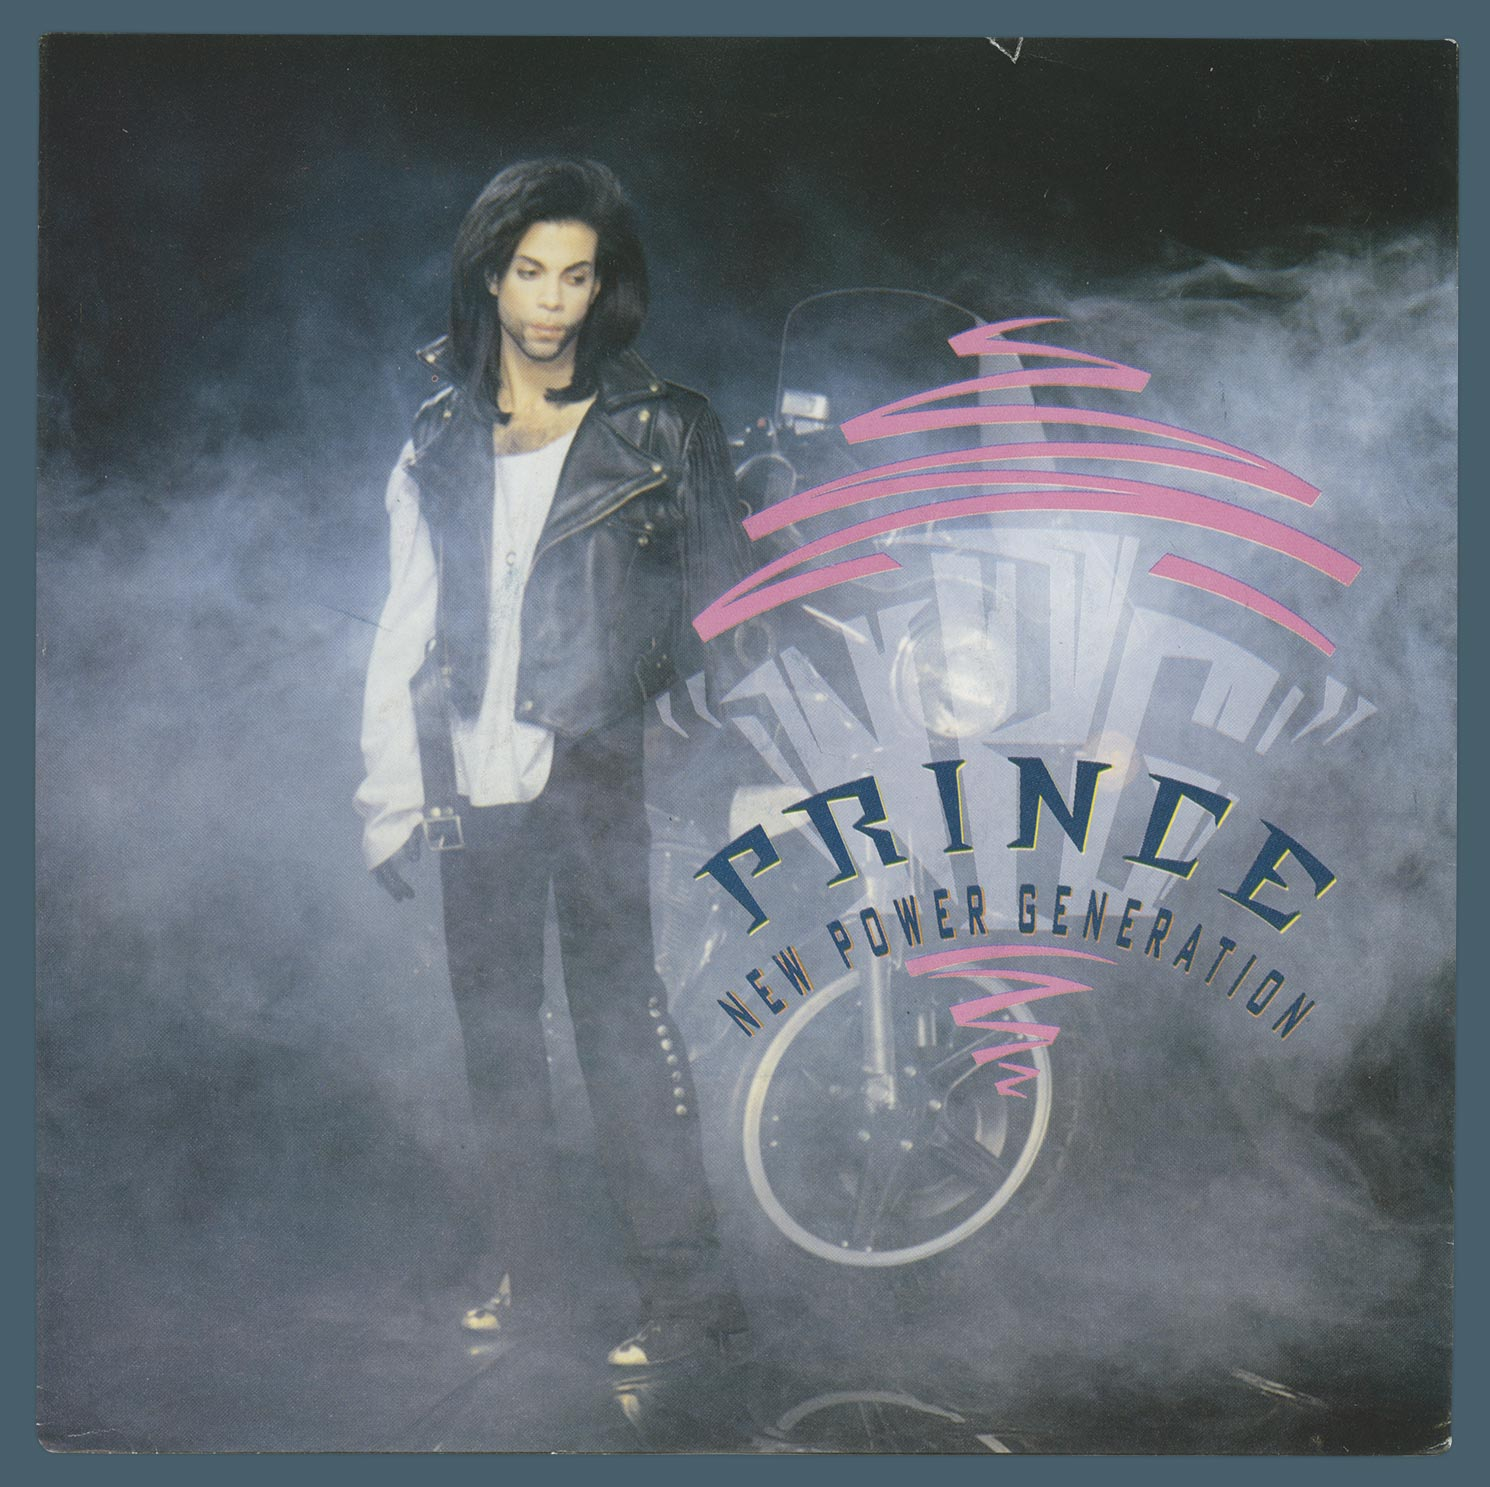 singles in prince Related artists singles definition a related artists single contains one or more prince input(s) for another artist or group (other than the npg) prince's inputs can include writing (or co-writing), production, mixing or a guest musical performance, but it excludes samples of prince's recordings.